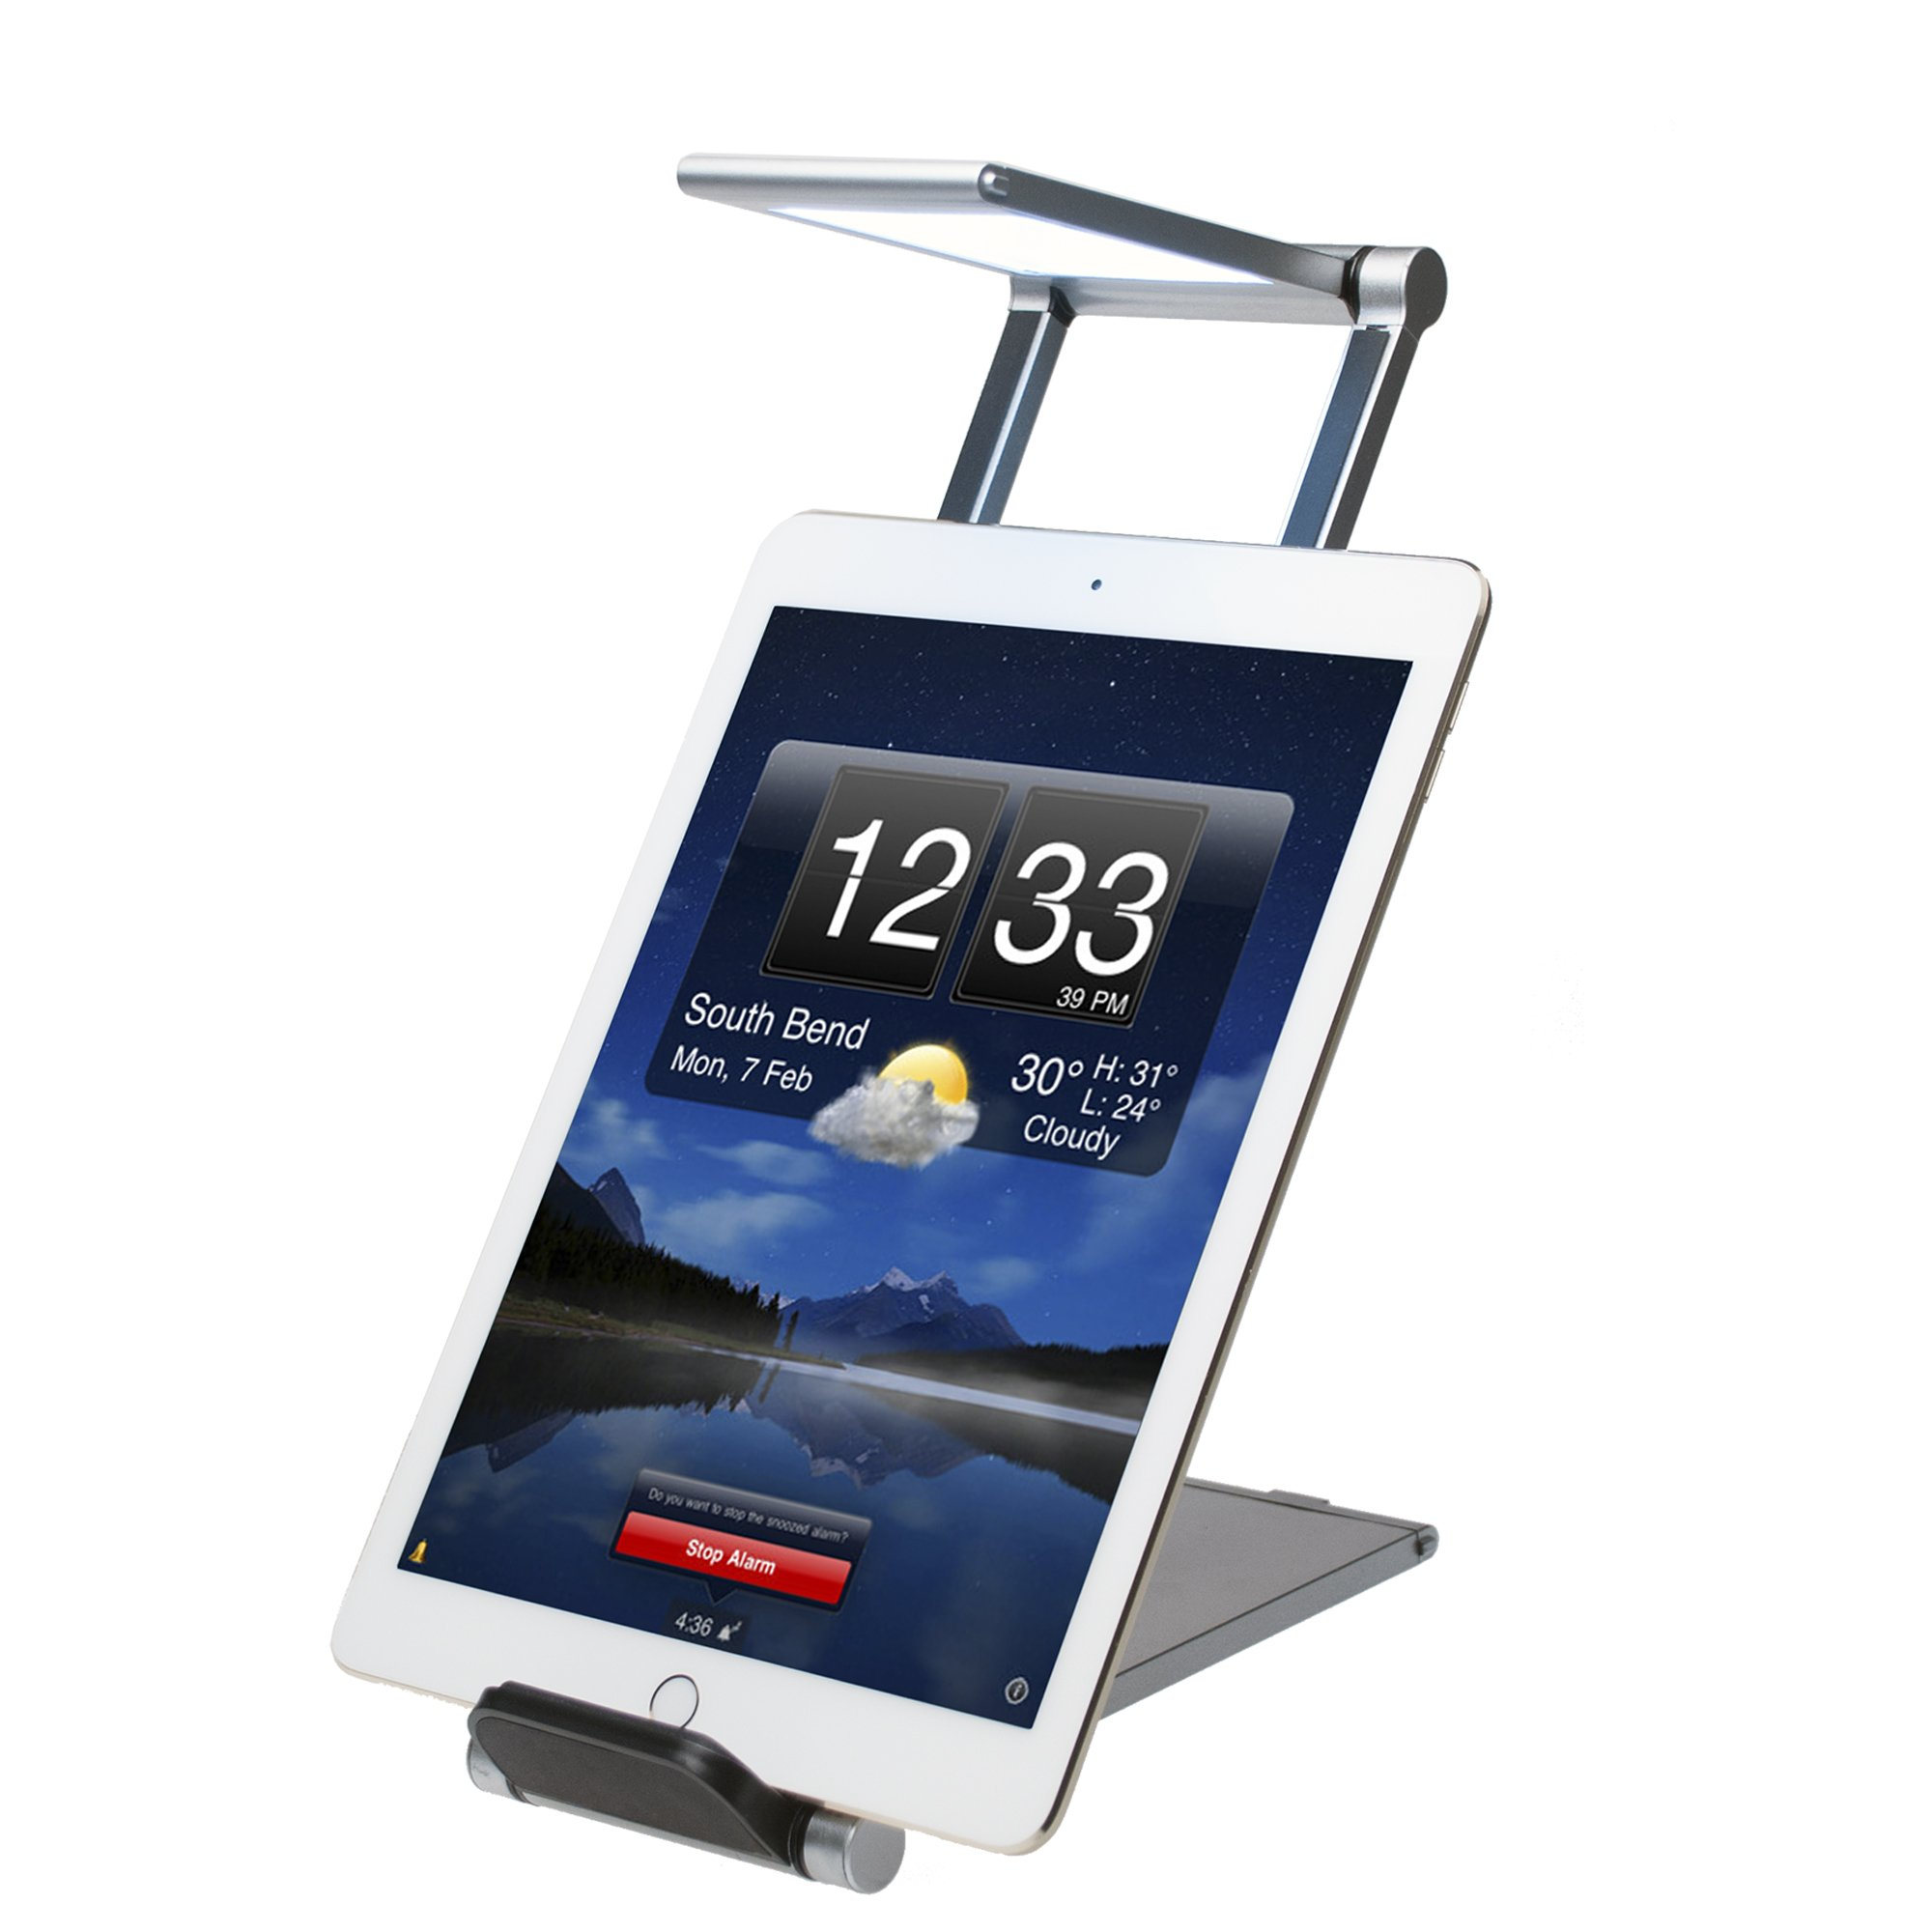 CTA Digital Foldable LED Desk Lamp Stand for Smartphones & Tablets up to 11.25'' in Length PAD-FLD